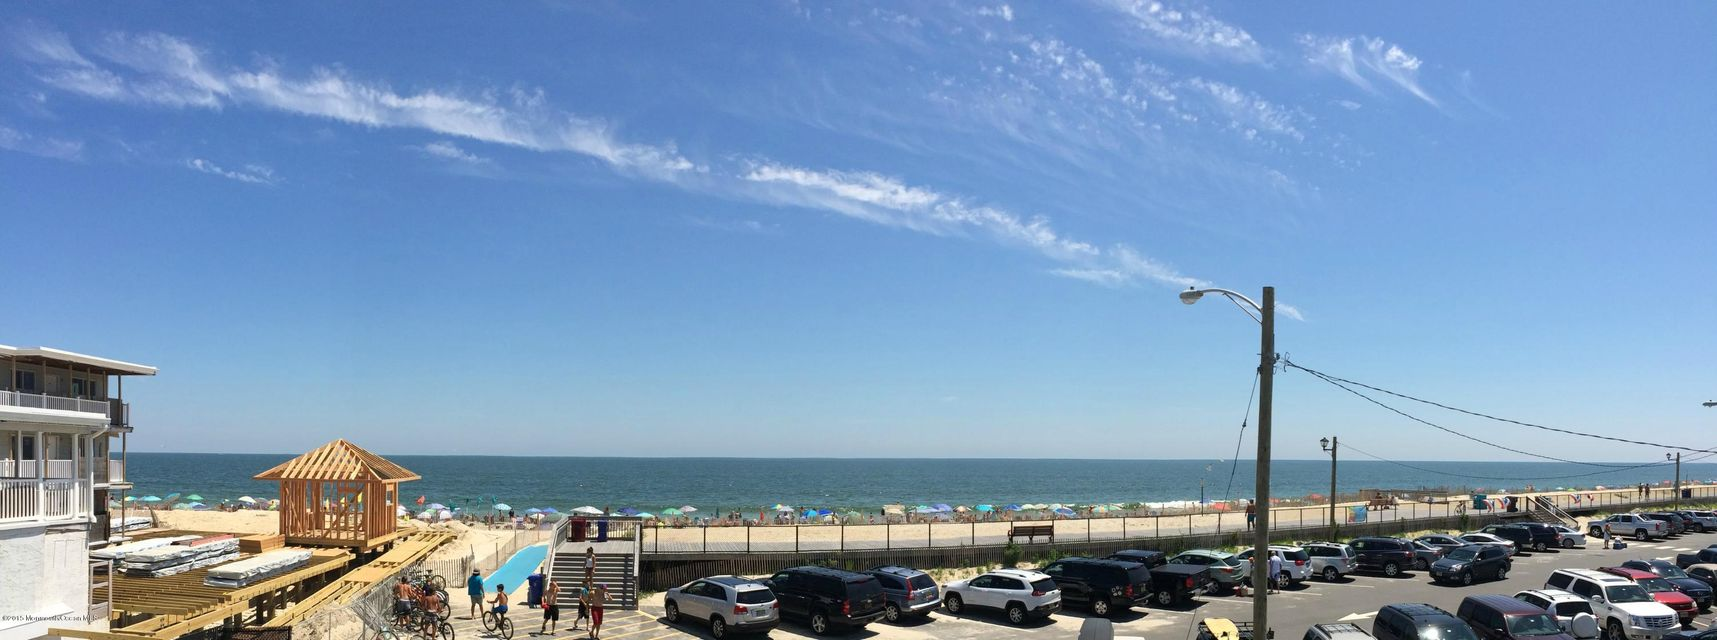 Additional photo for property listing at 1 2nd Avenue  Seaside Heights, 新泽西州 08751 美国